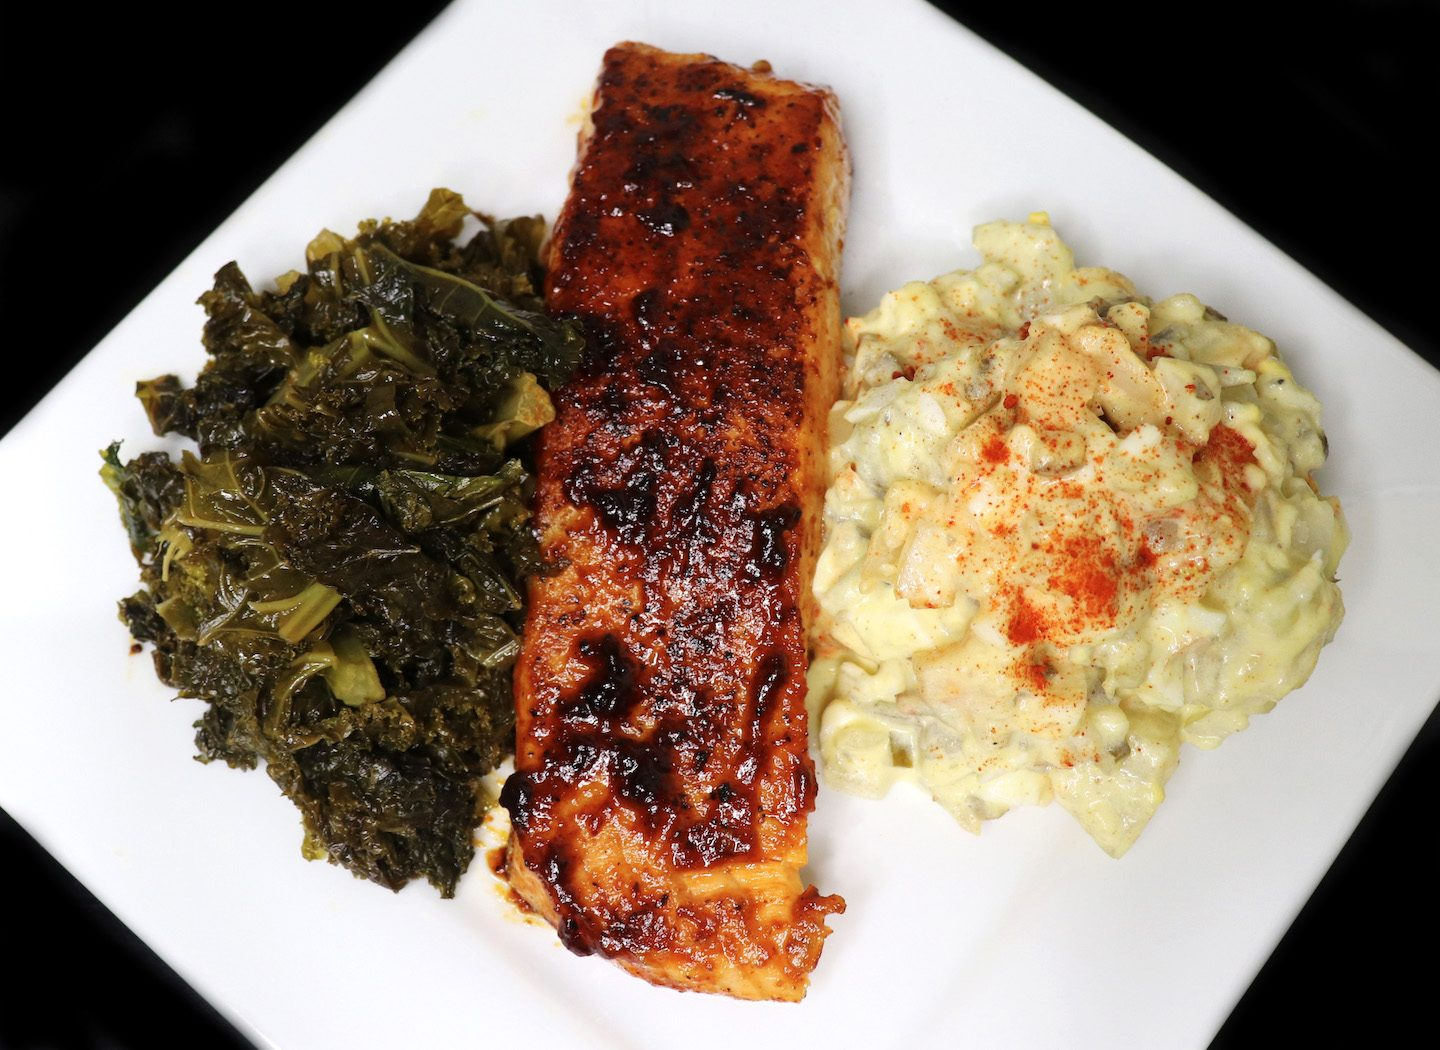 Southern Style Potatoe Salad with BBQ Salmon and sauteed Kale